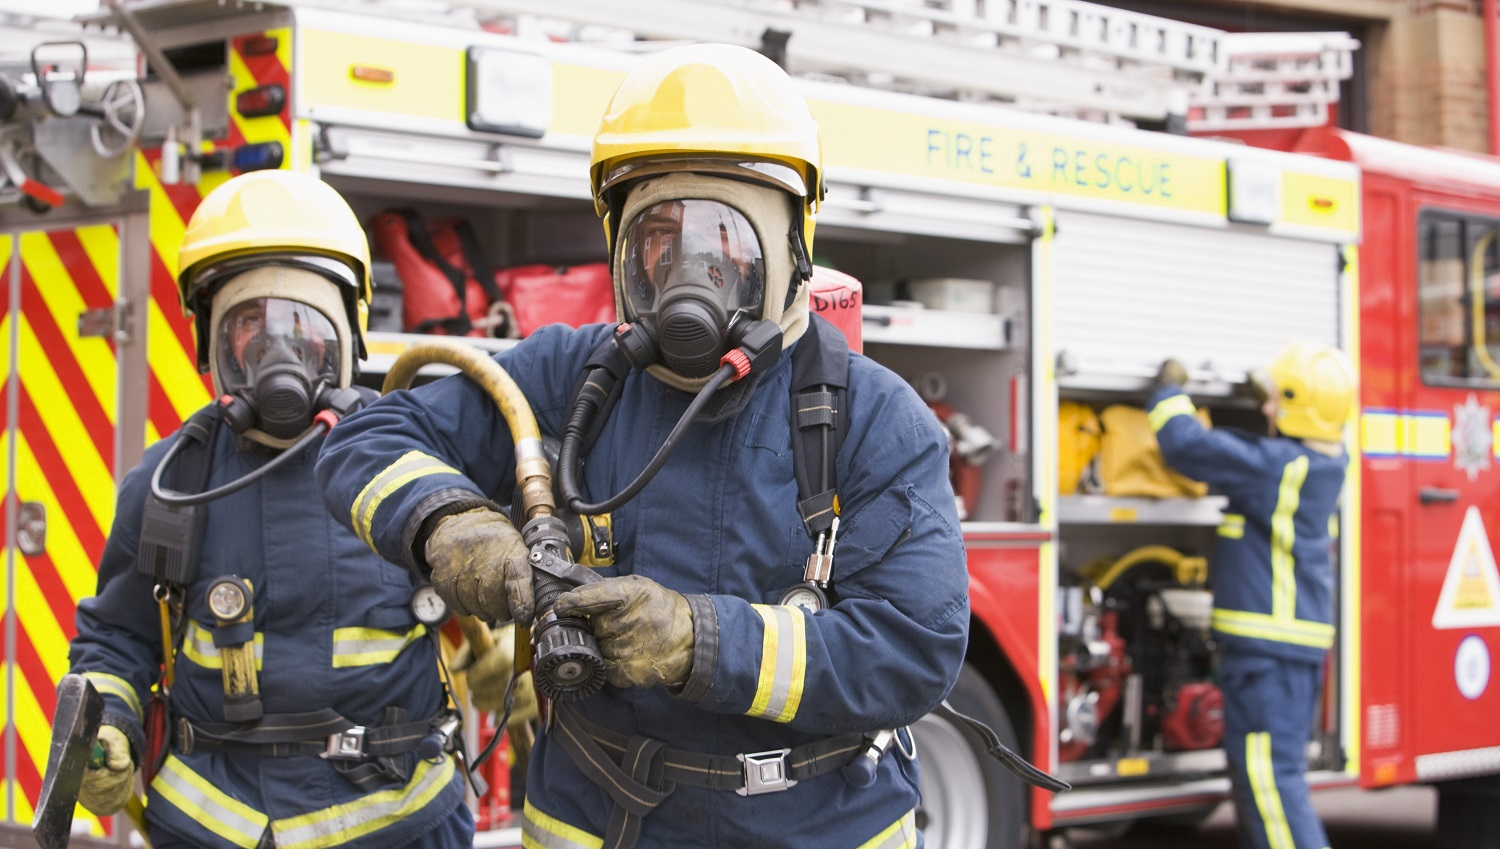 Fire Brigades Can Work More Efficiently Due to Automation